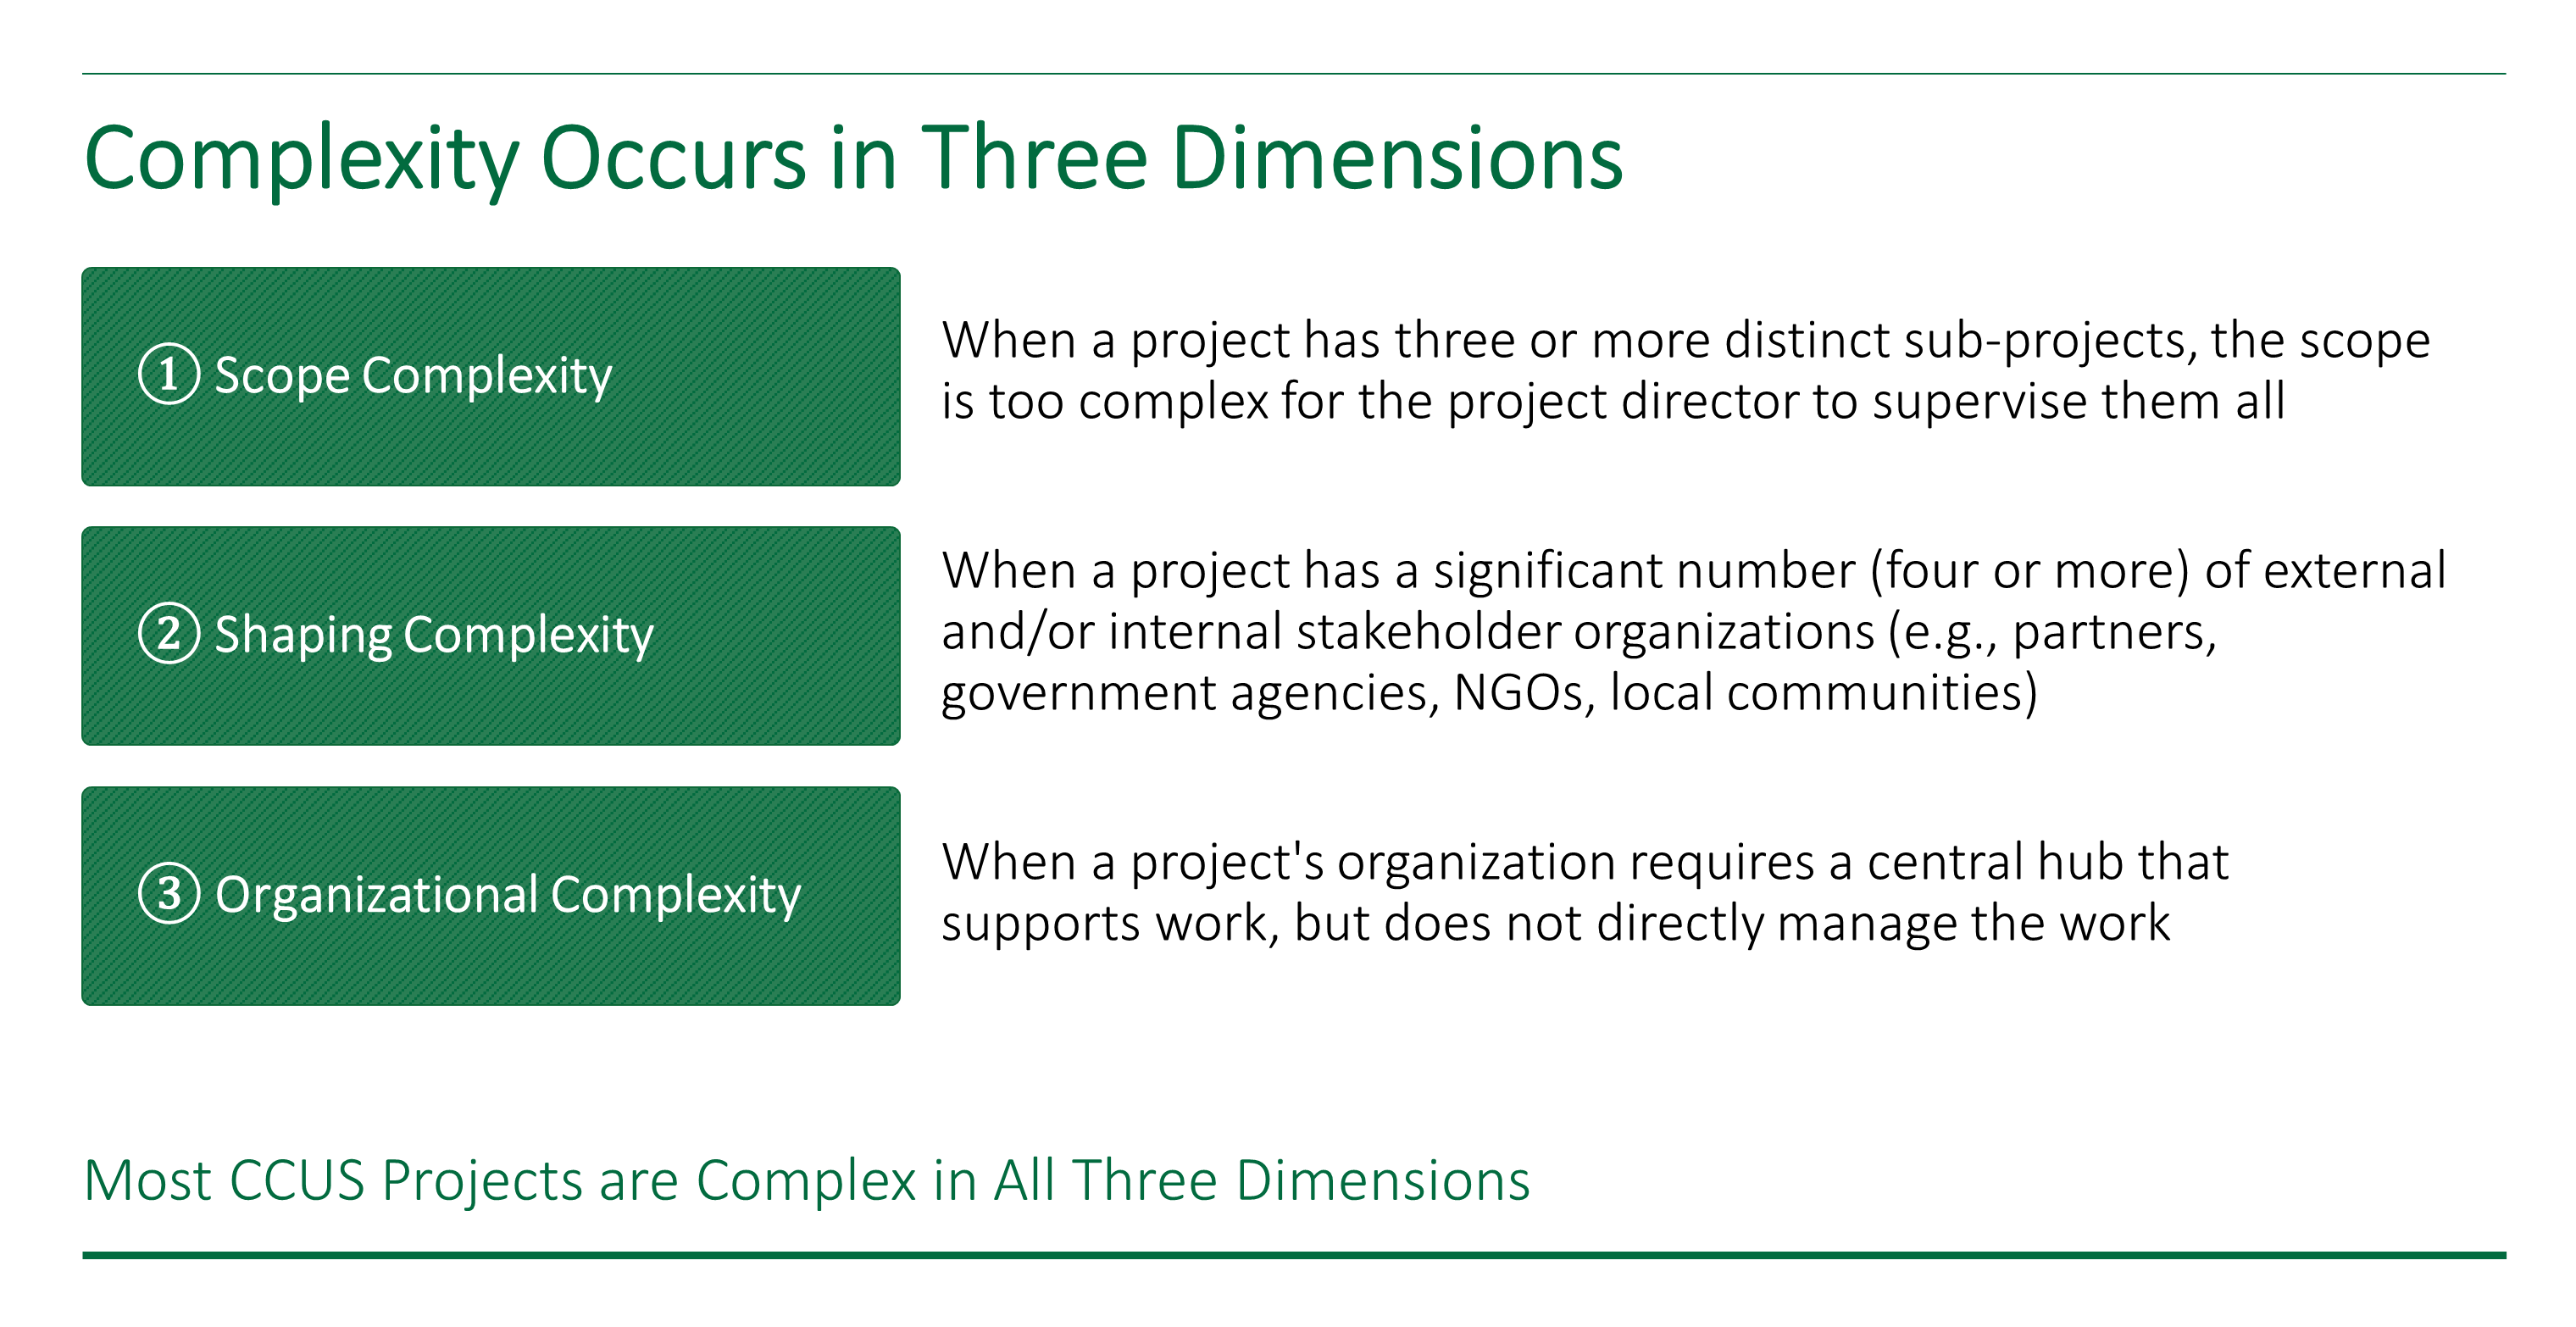 Chart describing the three dimensions in which complexiity occurs in CCUS opportunities.